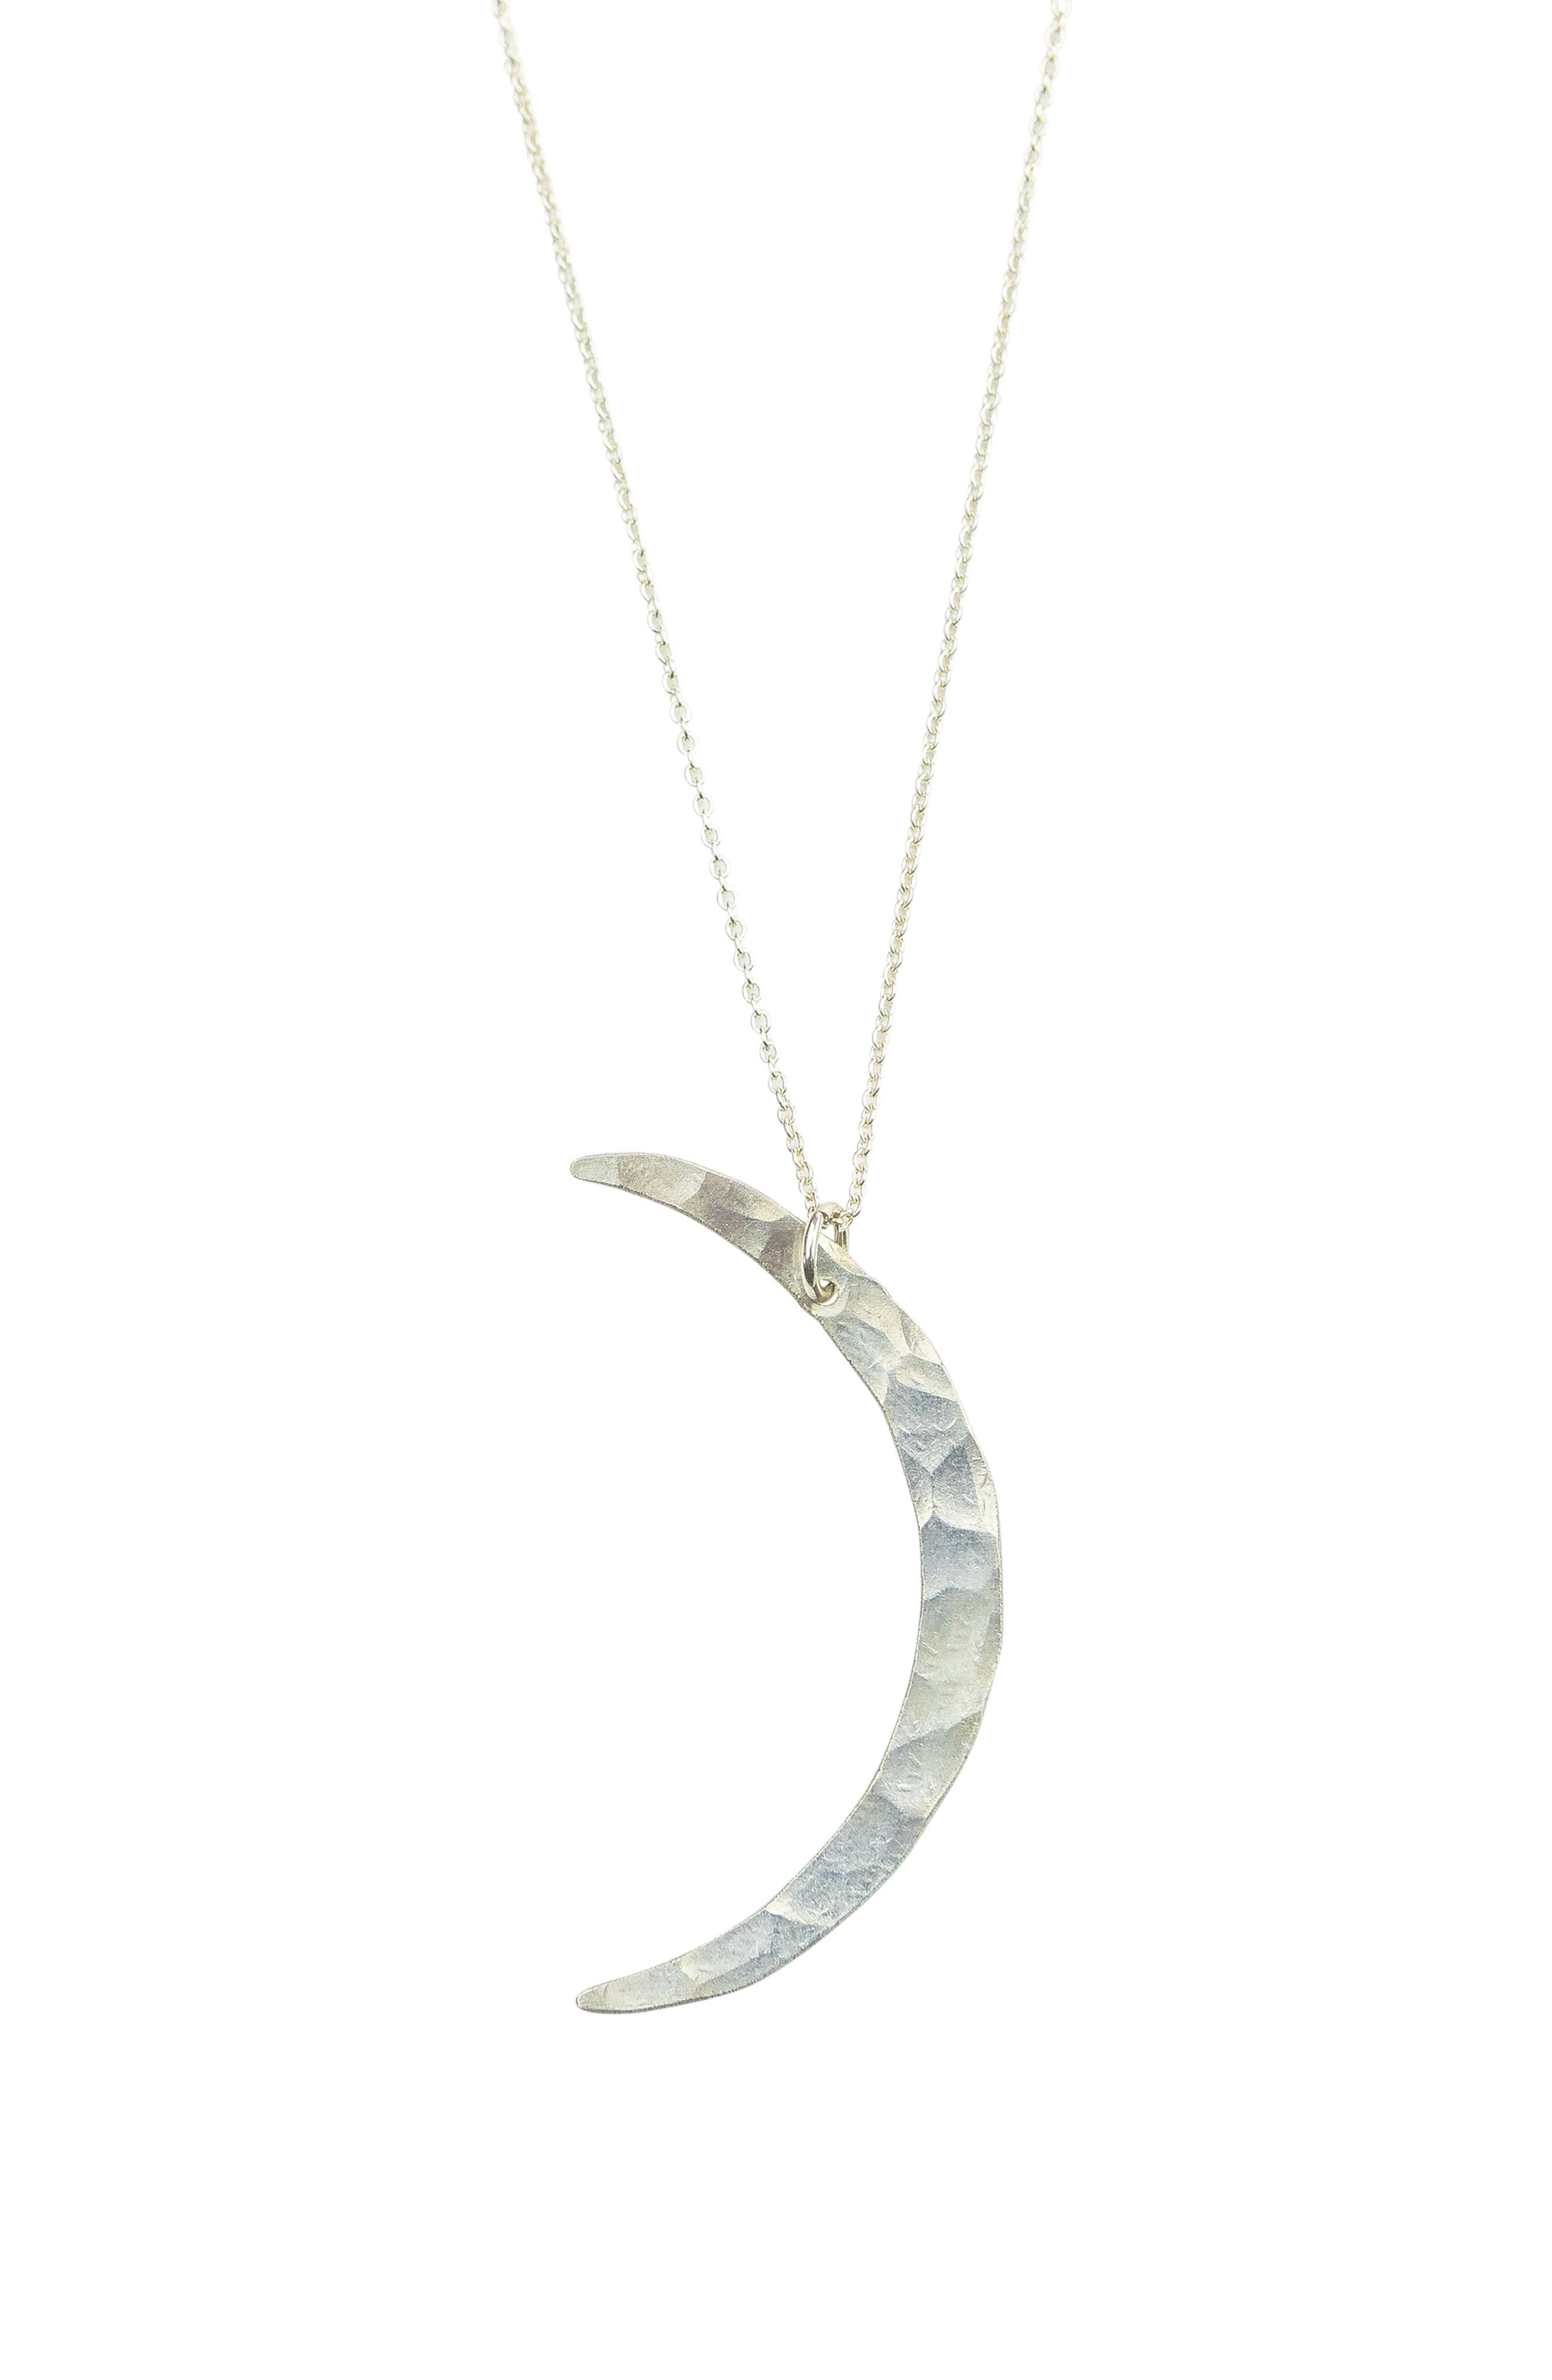 A hammered crescent moon pendant adds a celestial touch to this handcrafted and hand-polished chain-link necklace. Style Name: Nashelle Crescent Moon Necklace. Style Number: 5872664. Available in stores.